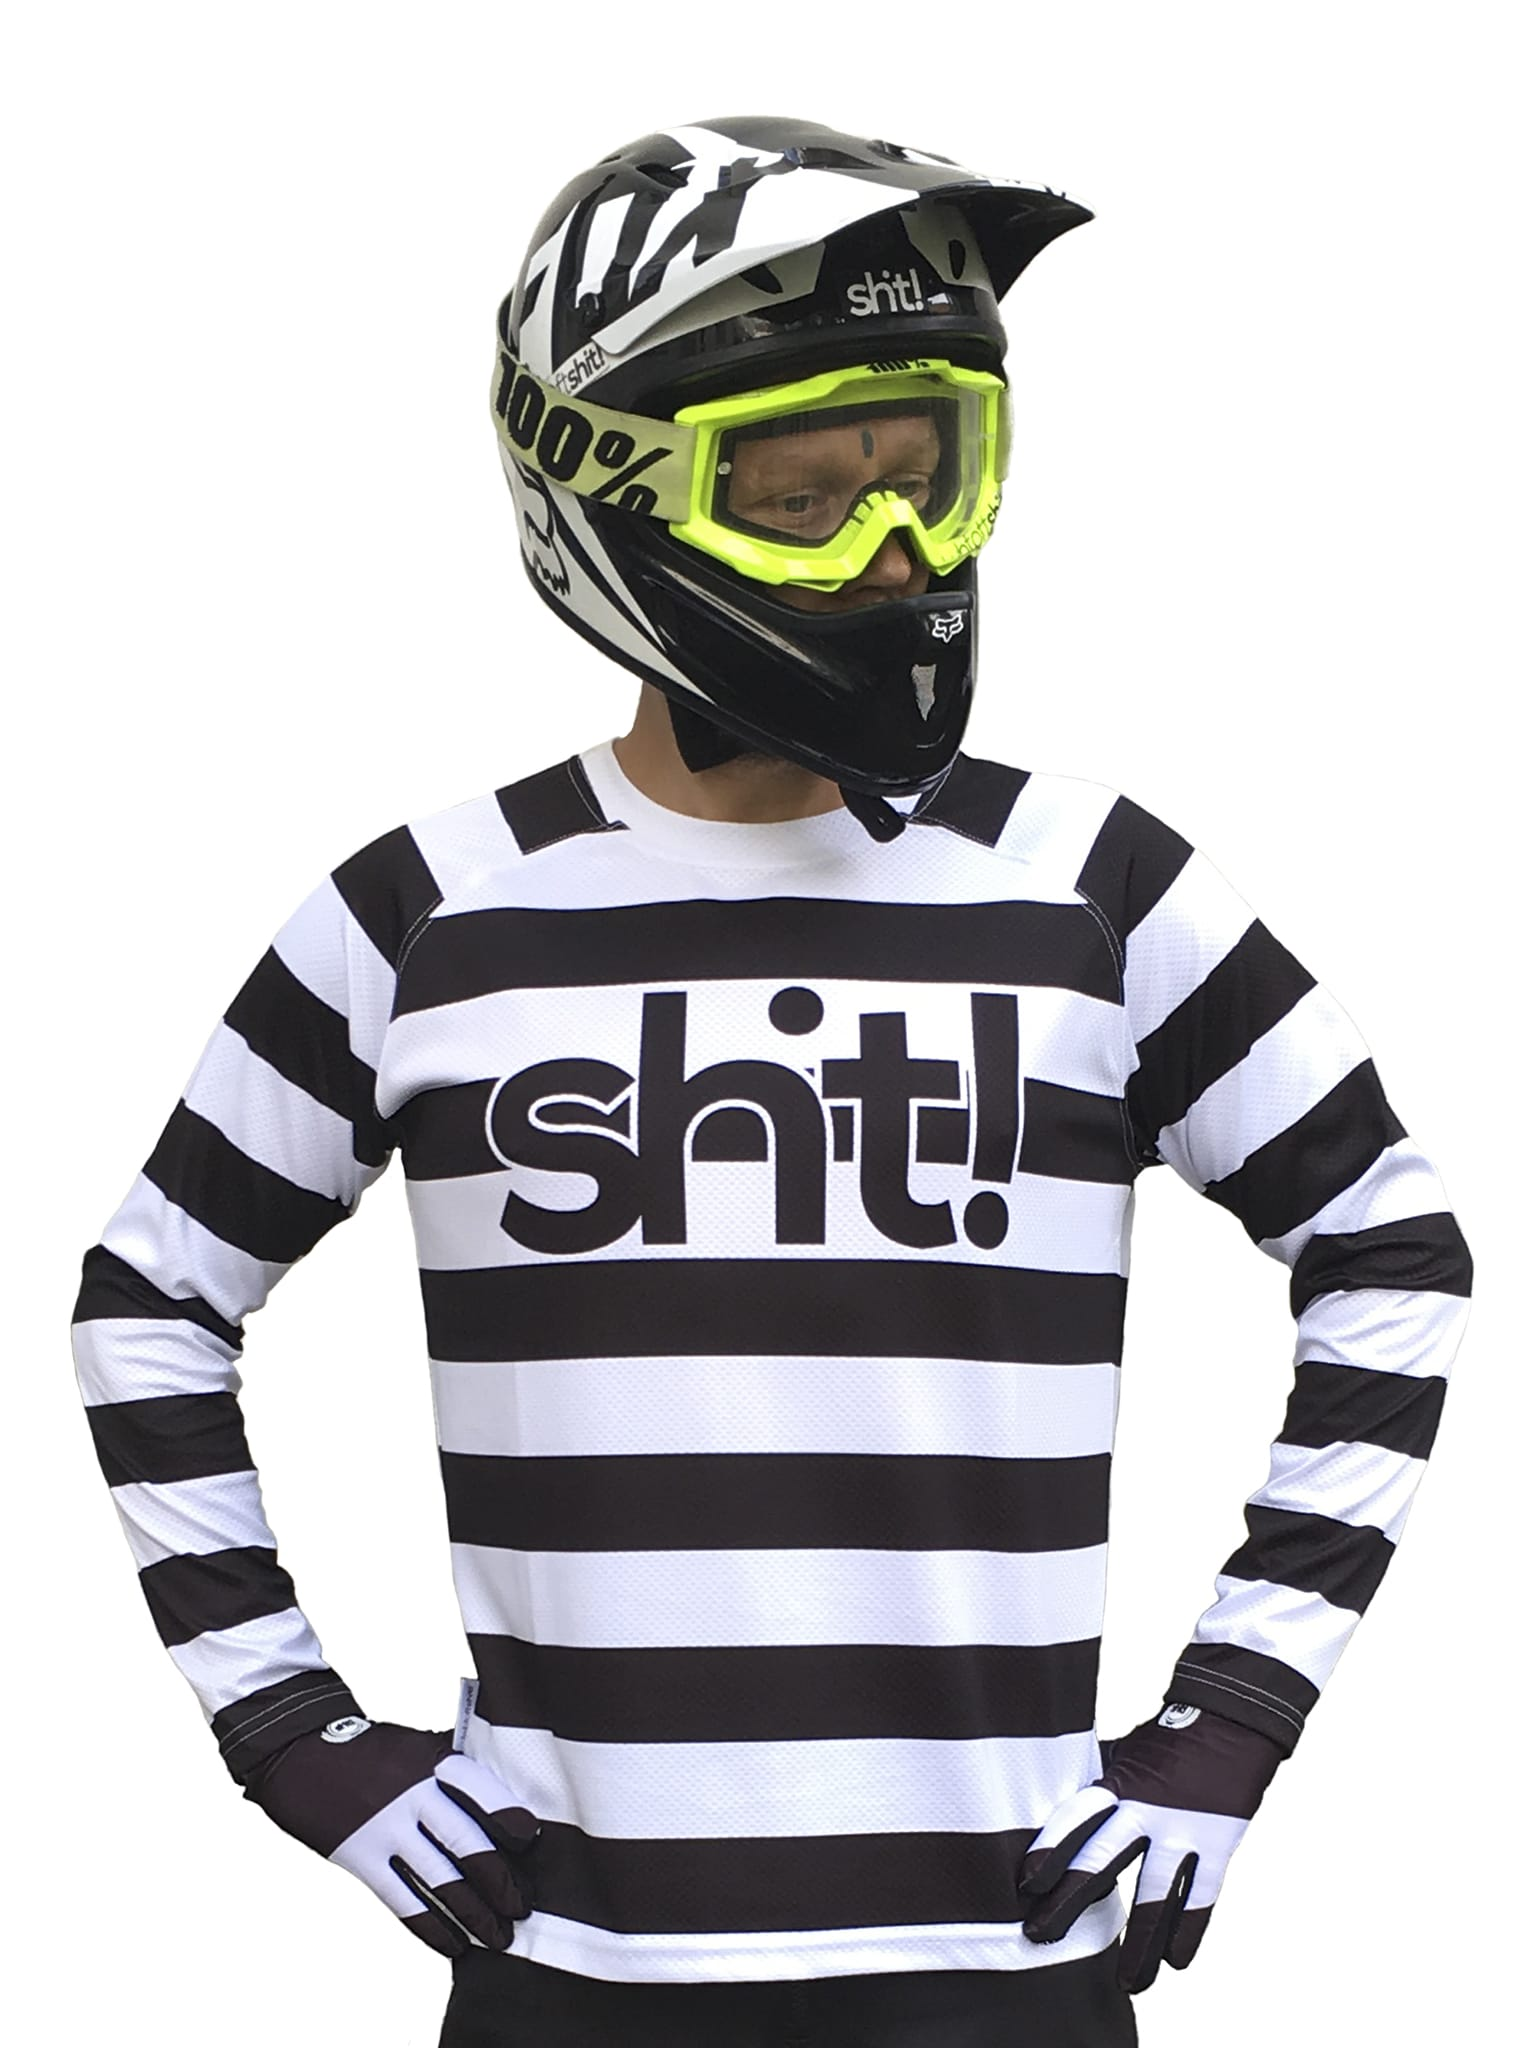 Black and white striped Mx Jersey - In 4 life collection